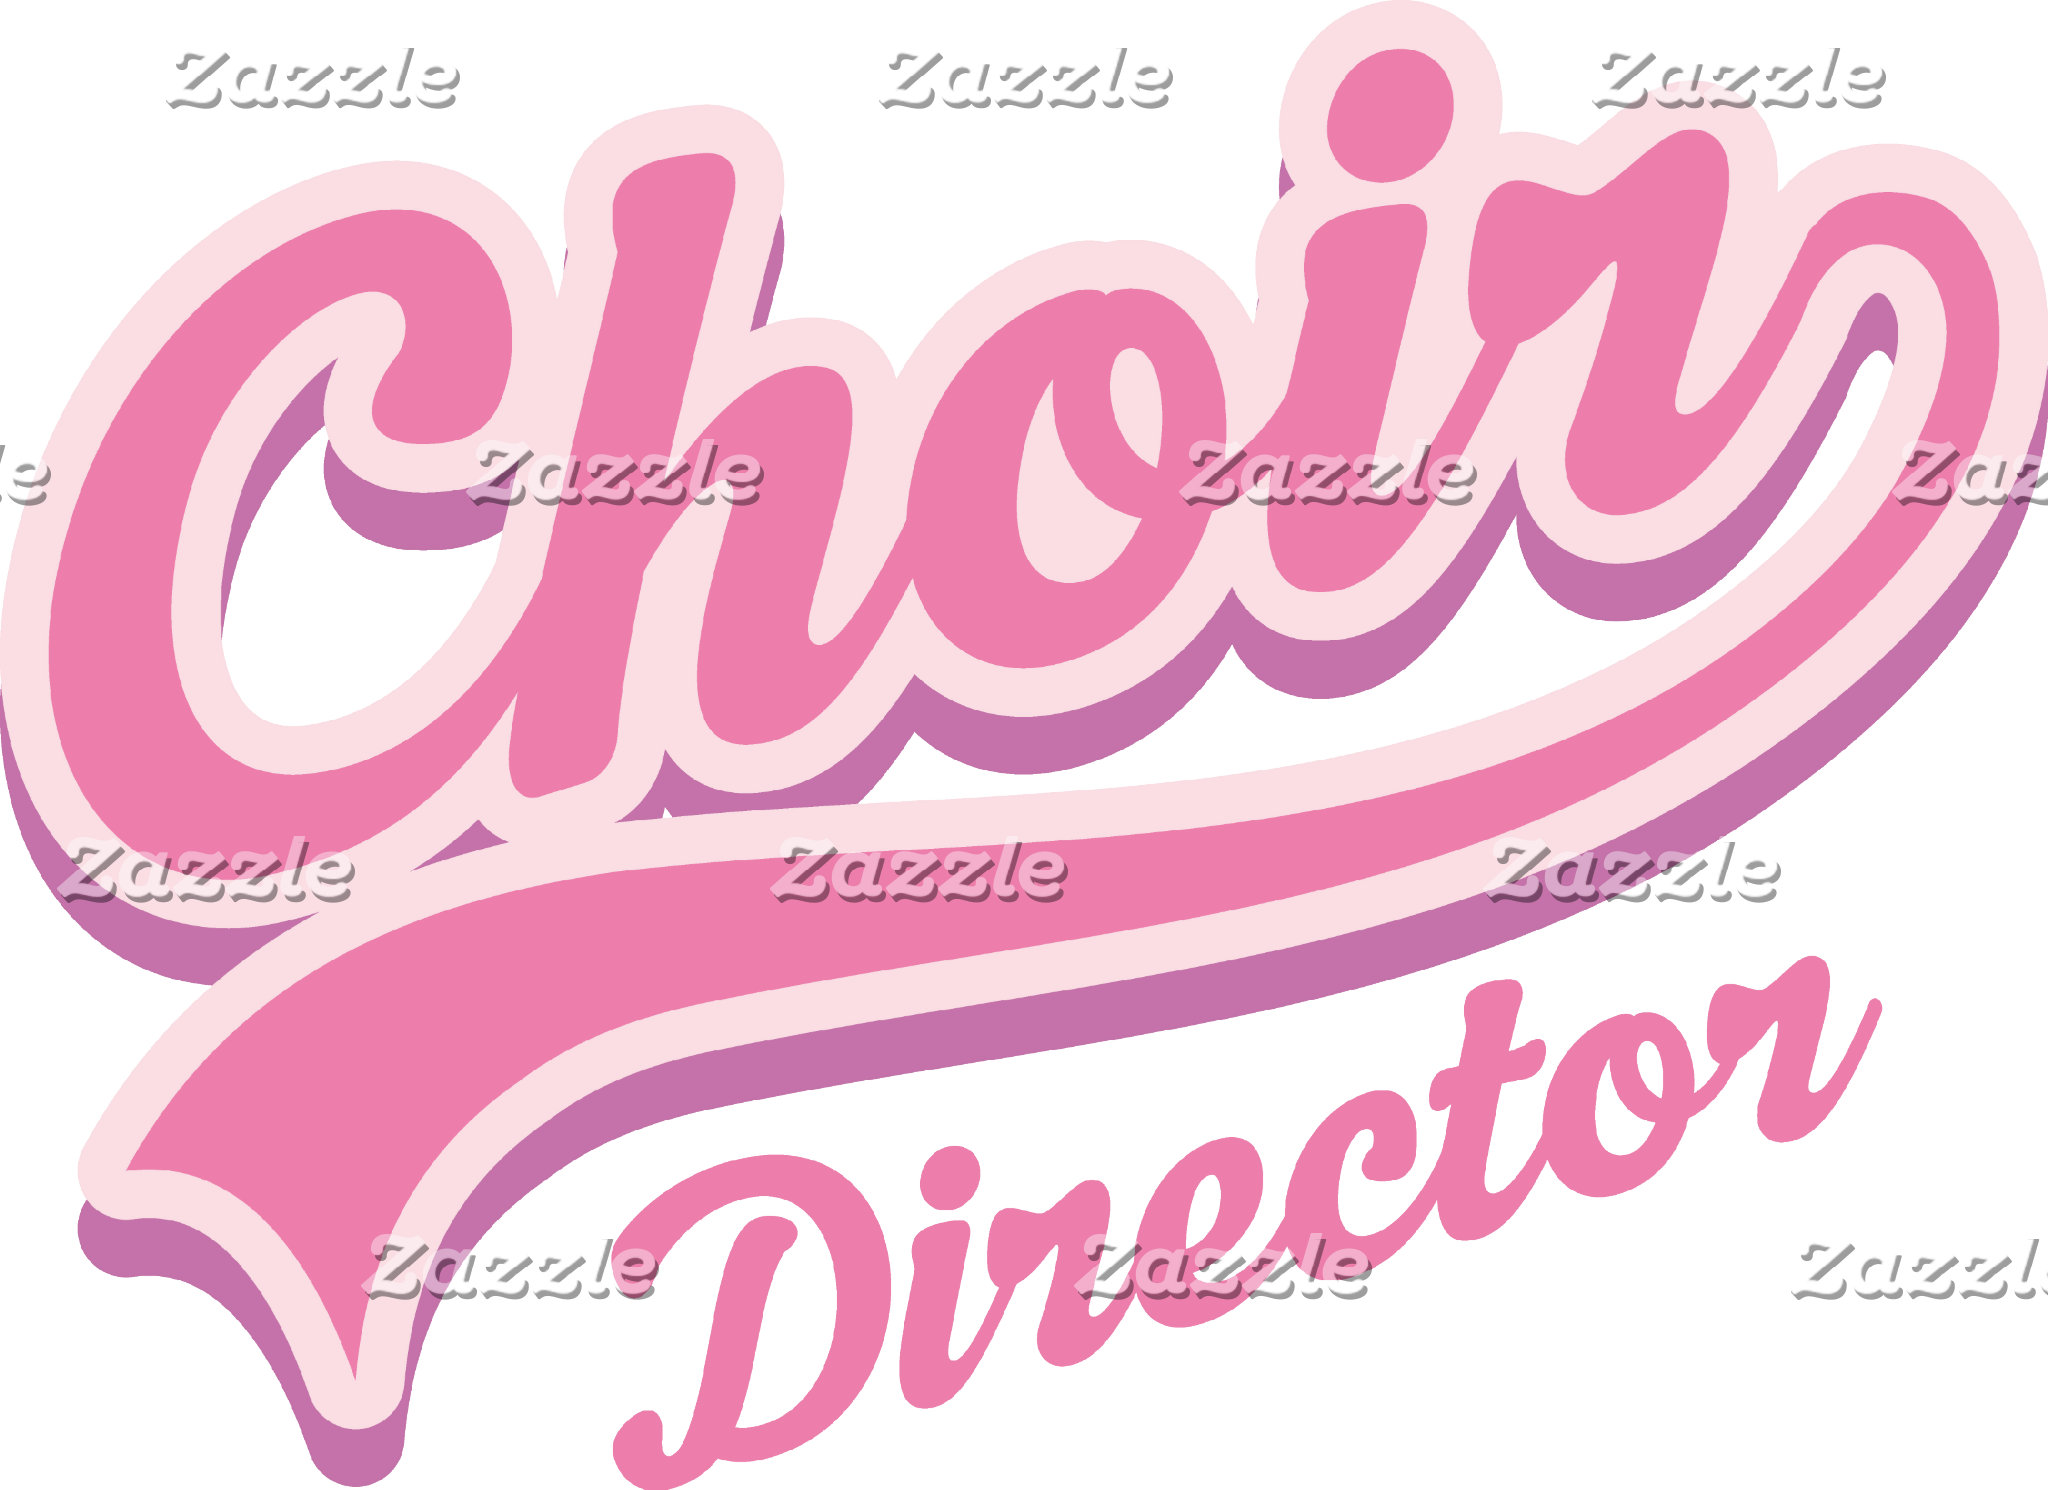 Choir Director T Shirts and Mugs